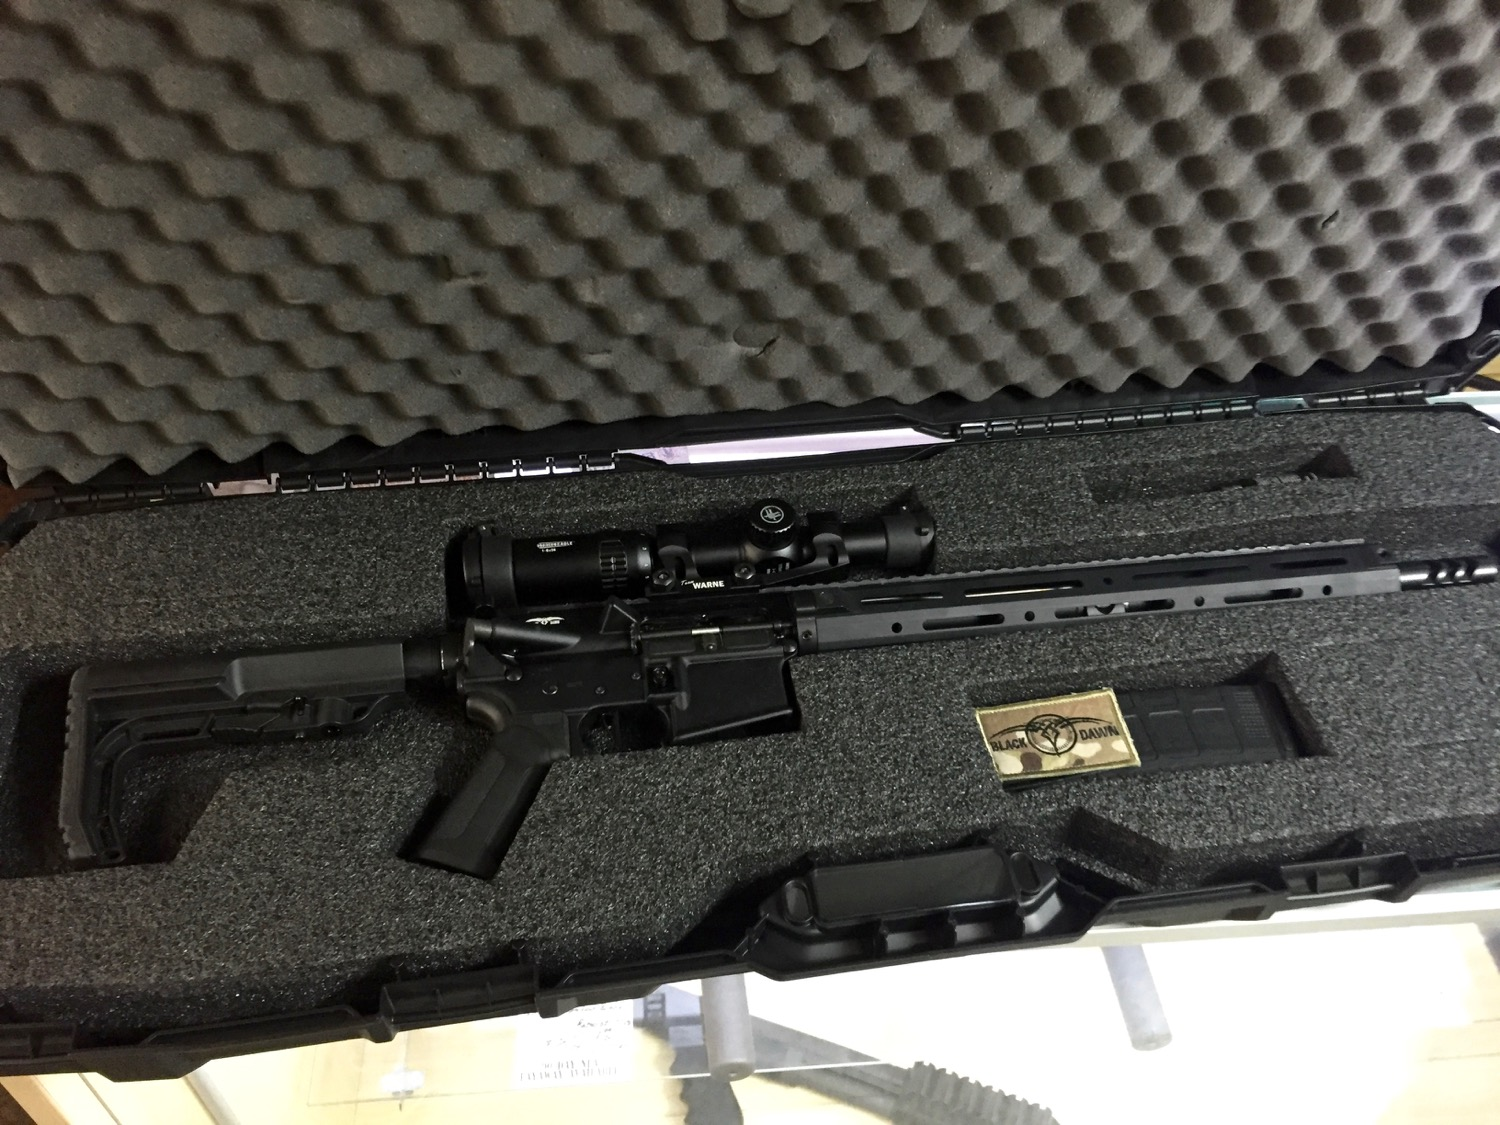 Simple box, rifle, mag and some lube.